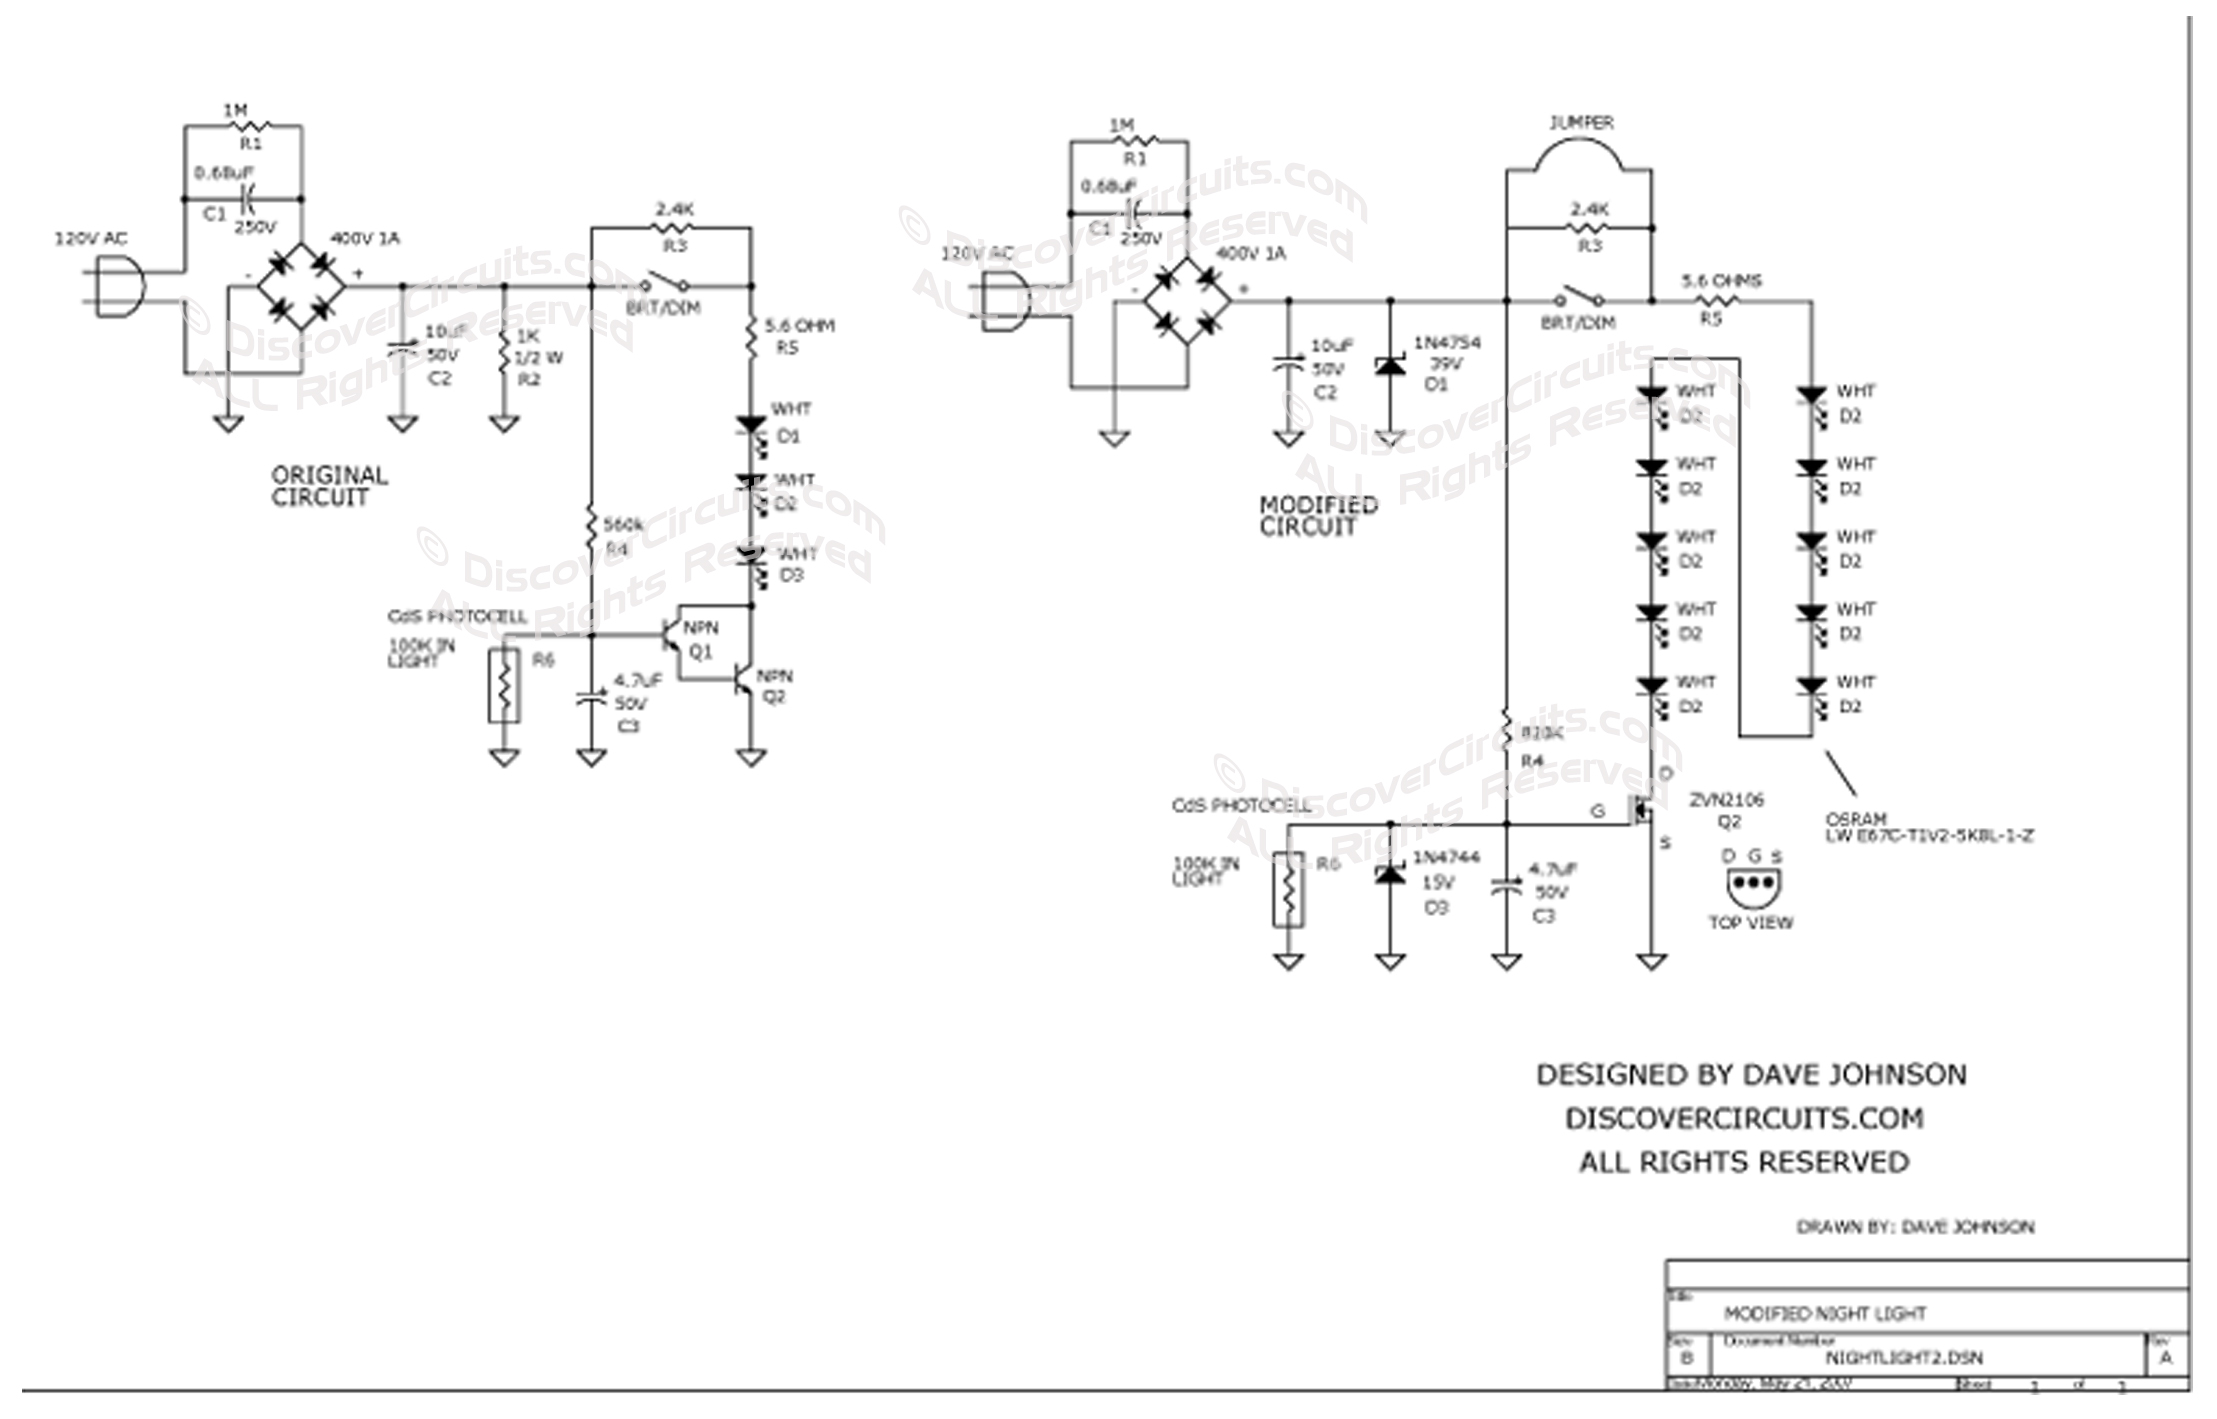 Led light schematic trusted wiring diagram circuit modified led night light led wiring schematic circuit modified led night light by david johnson asfbconference2016 Choice Image